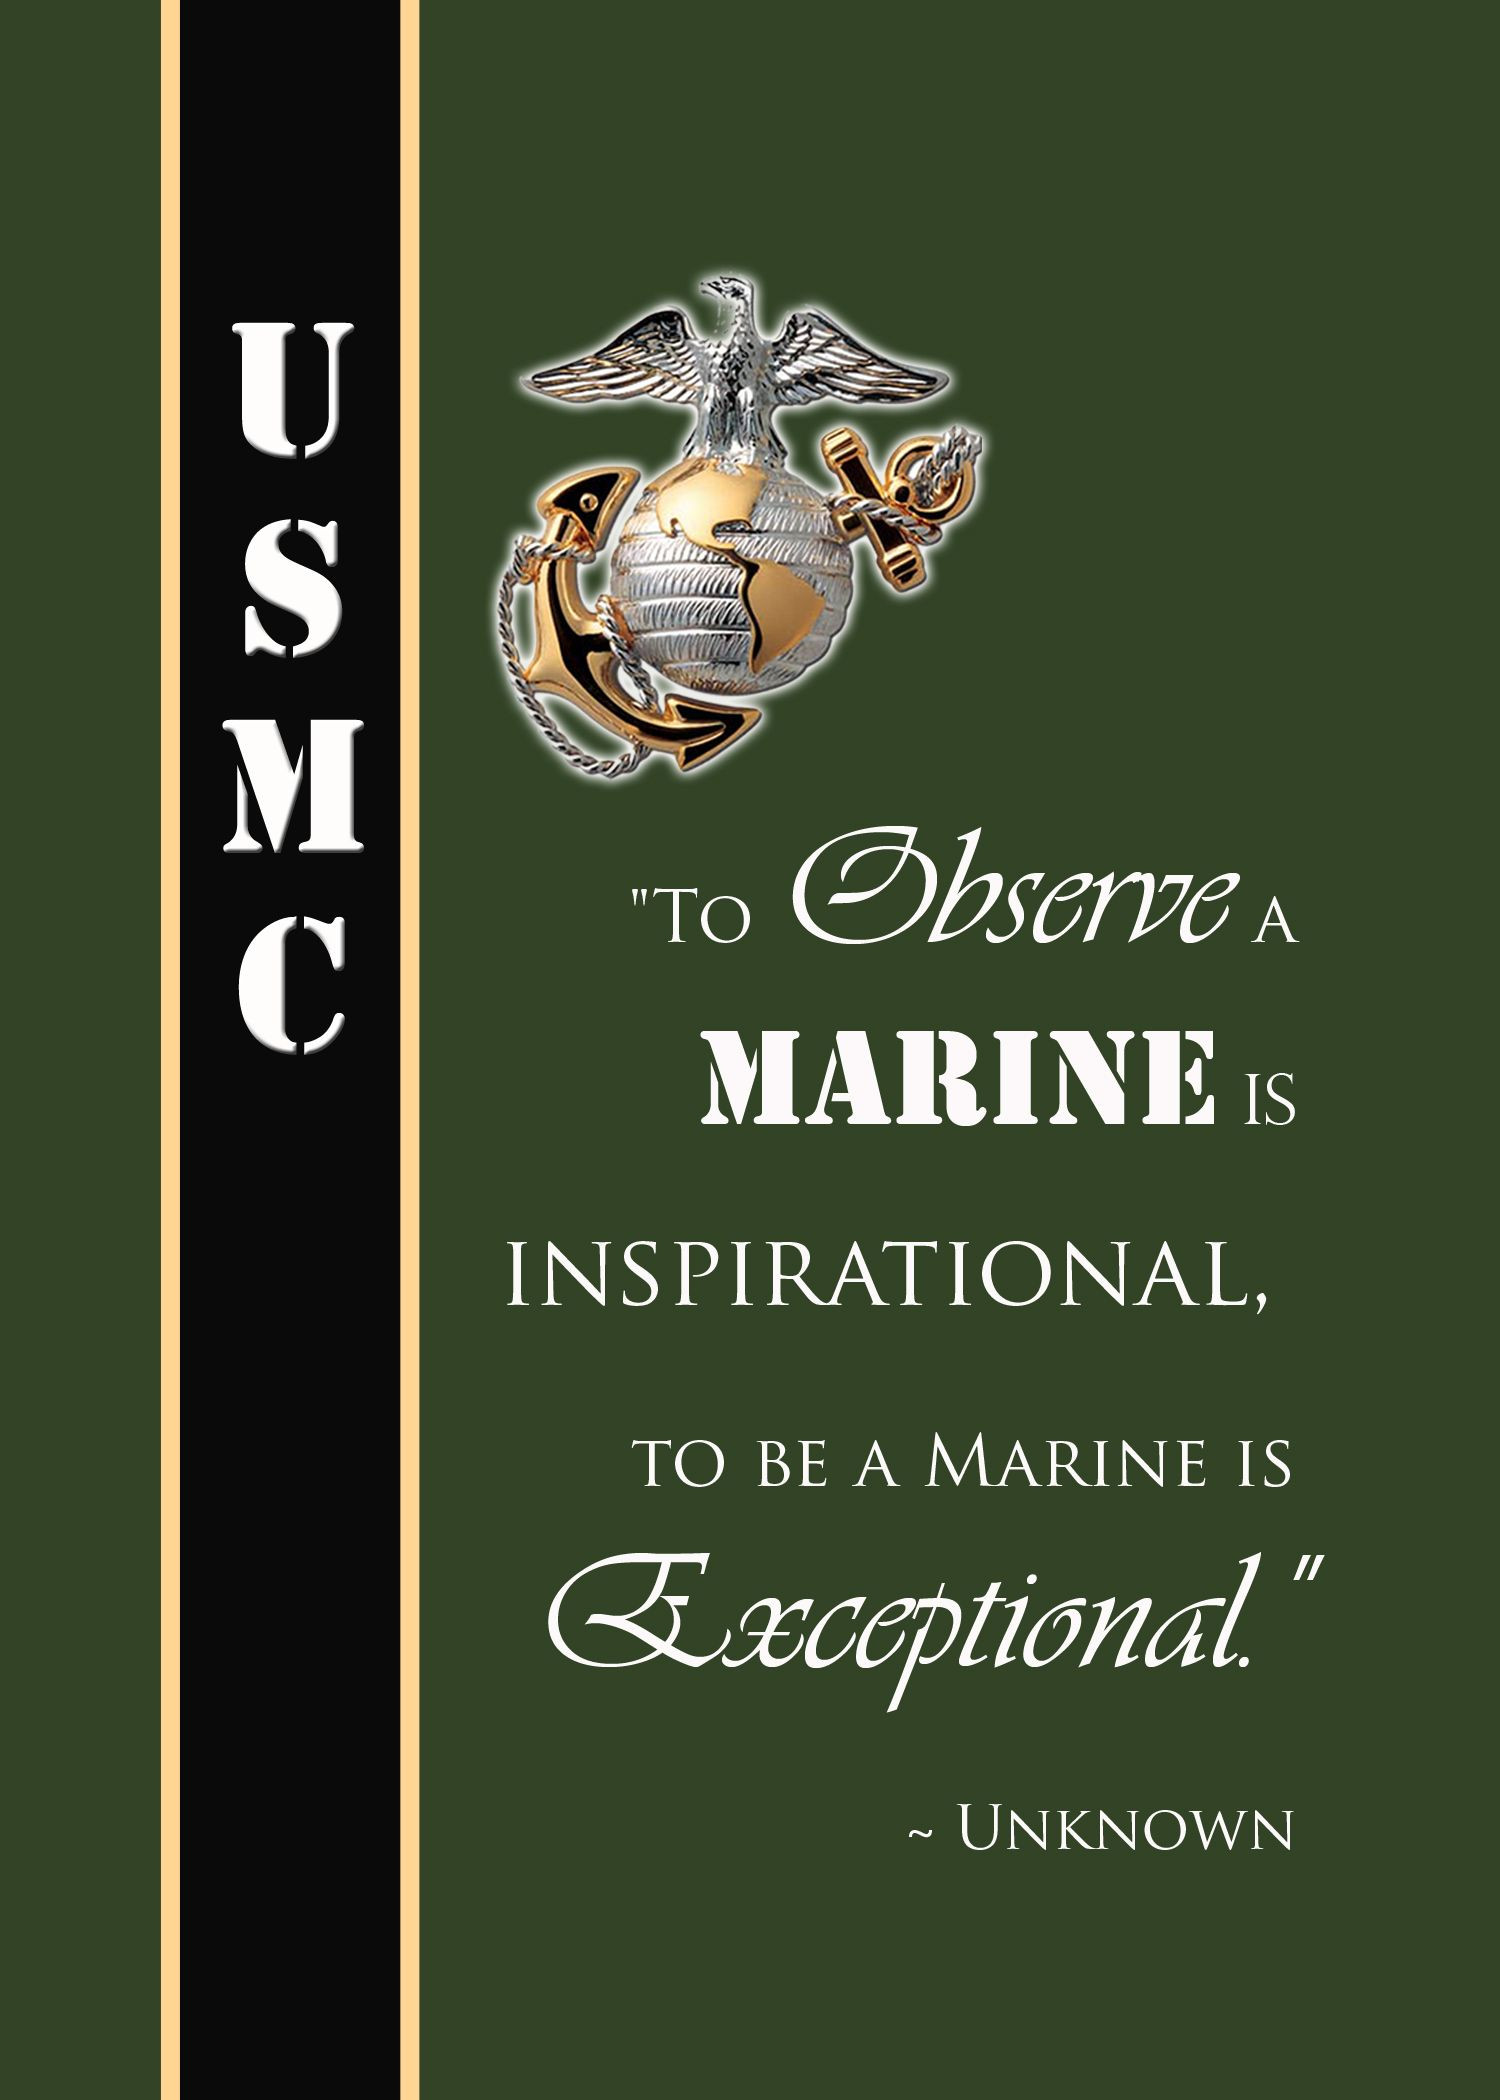 Marine Corps Inspirational Quotes  Famous Marine Quote To observe a Marine is inspirational